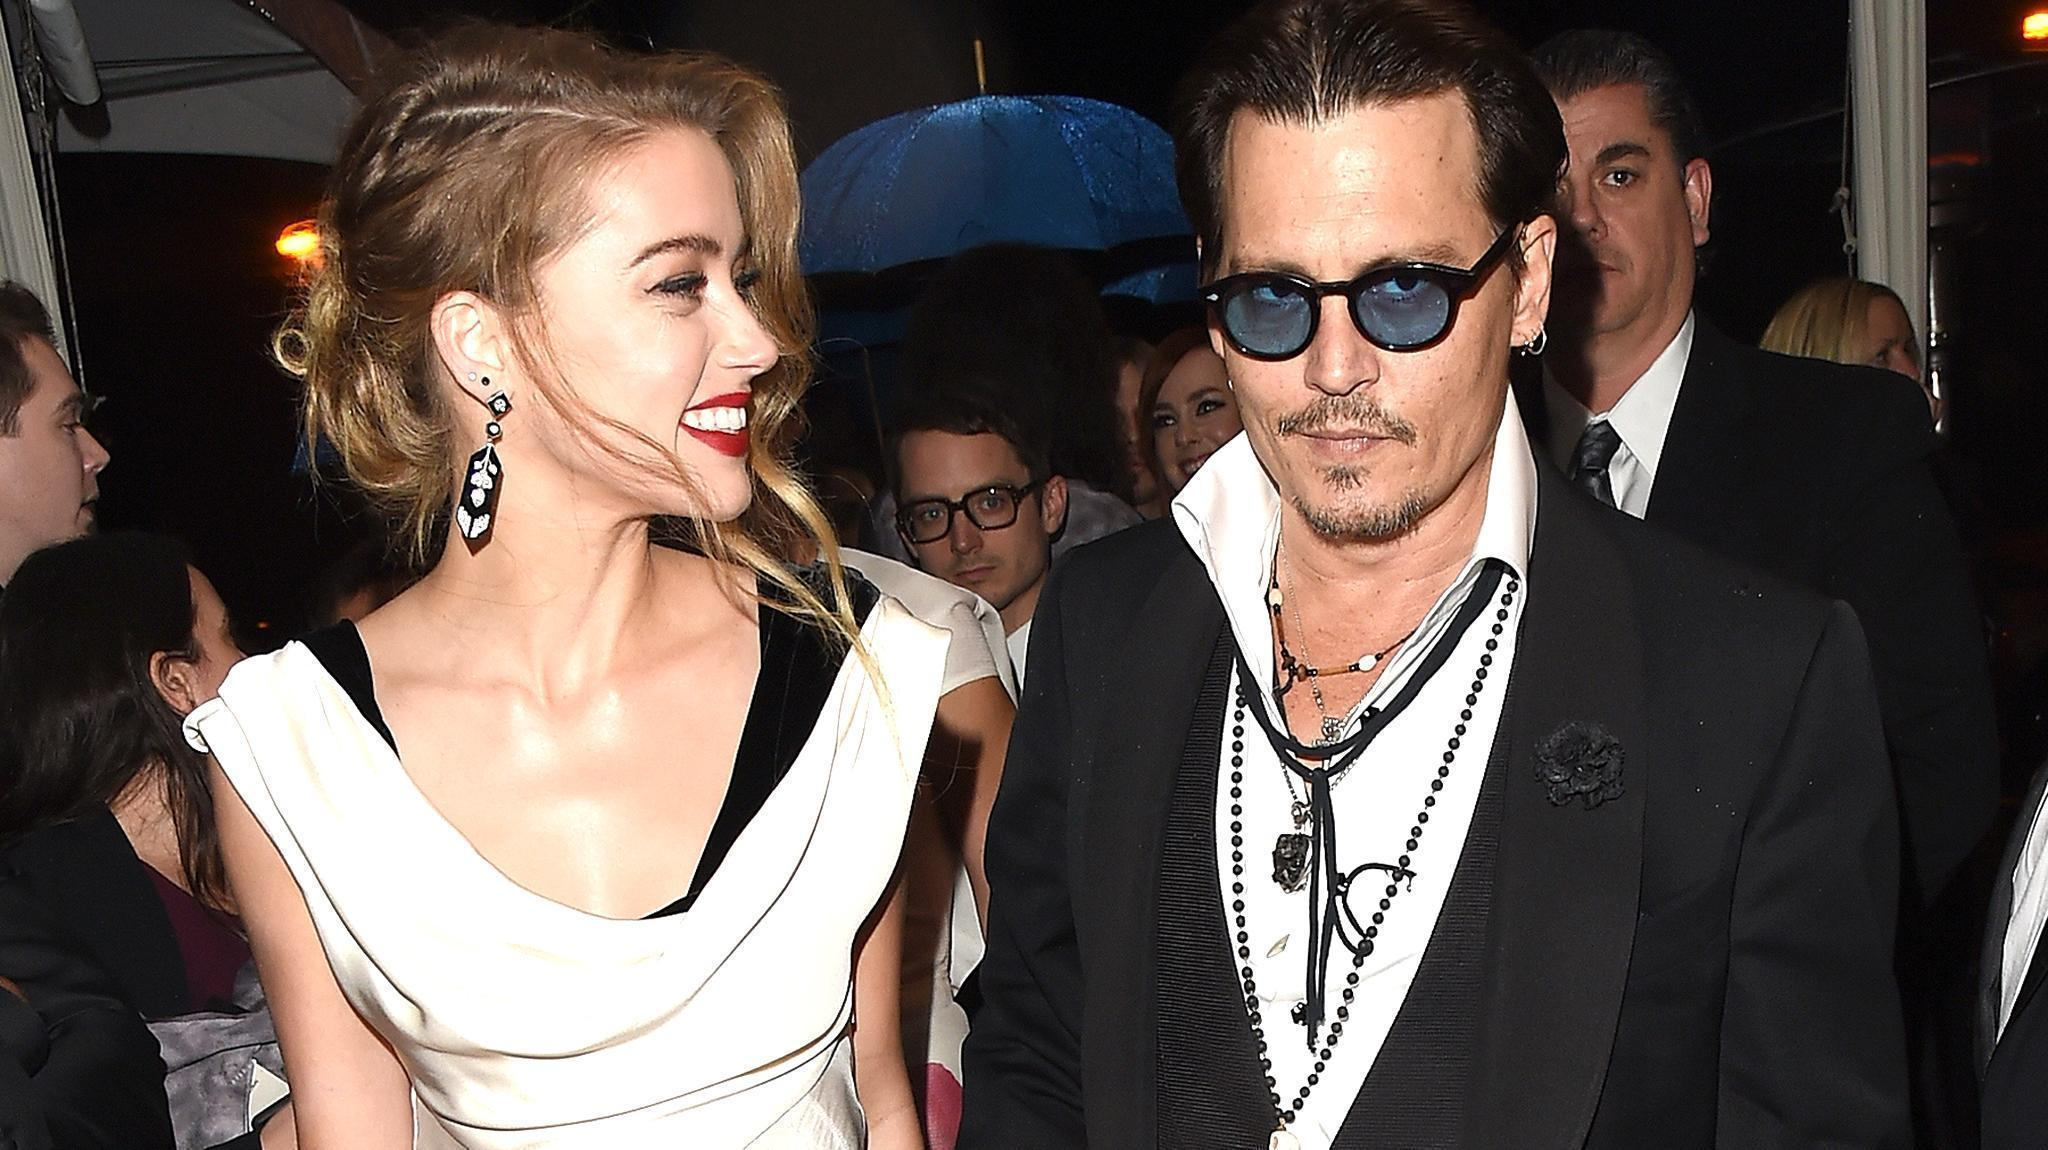 Johnny Depp and Amber Heard: A Look Back at Their Troubled 15 Months of Marriage